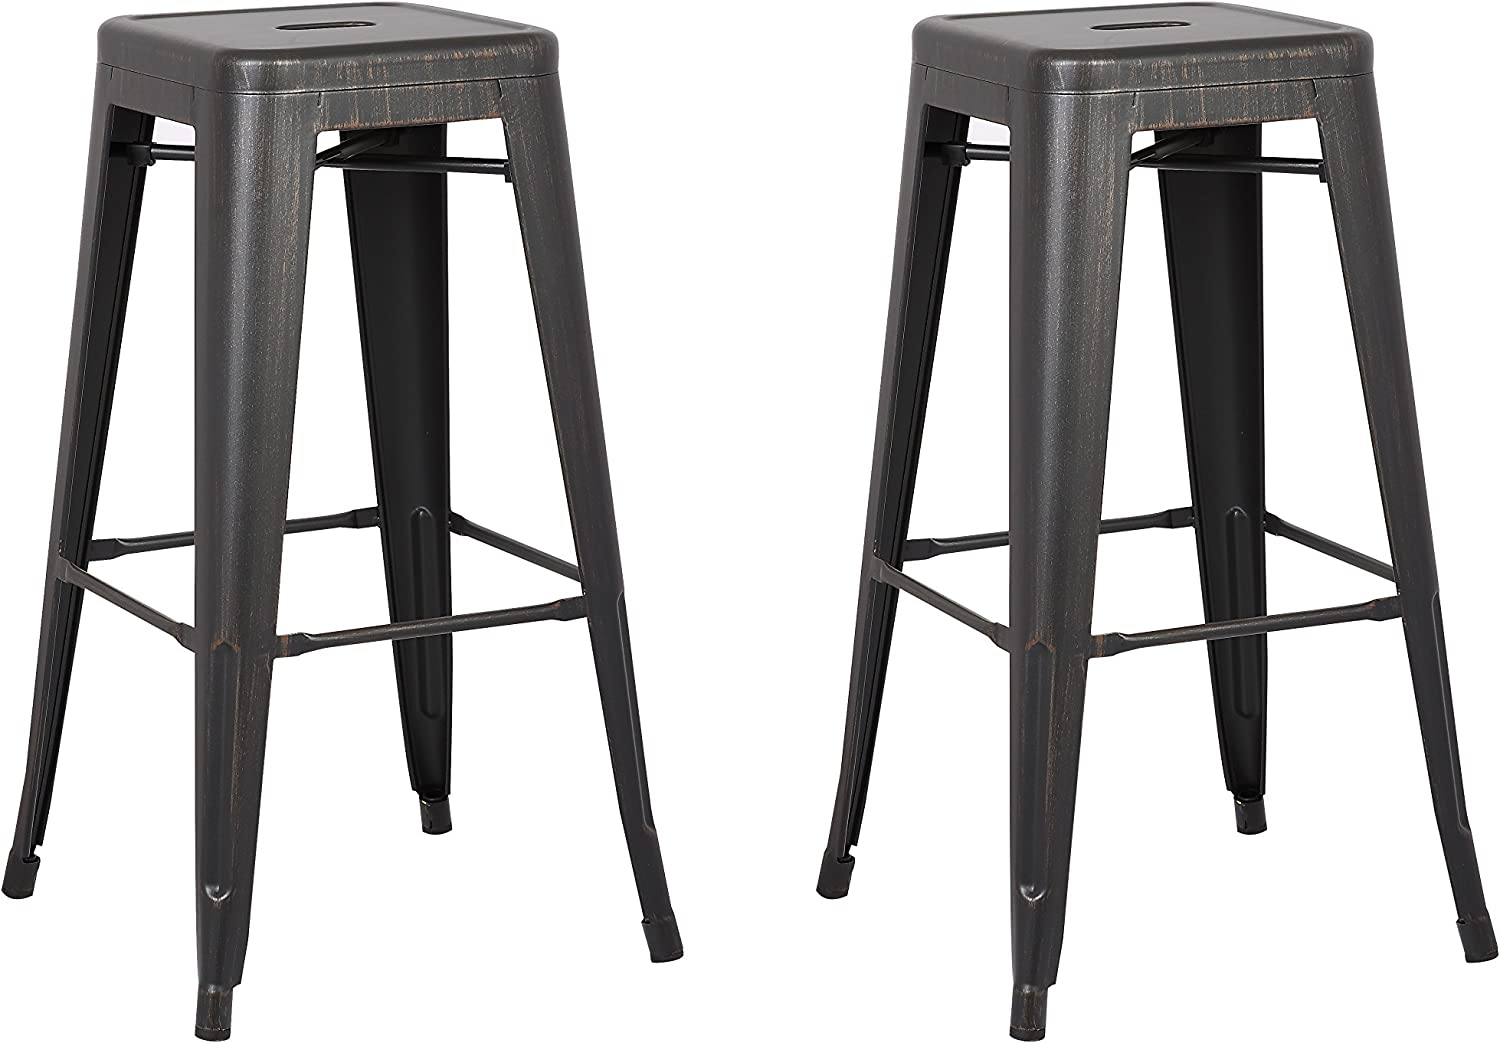 Christies Home Living Backless Modern Light Weight Industrial Contemporary Rustic Vintage Costal Metal Bar Stools Without Back and 4 Leg Design (Set of 2) (30